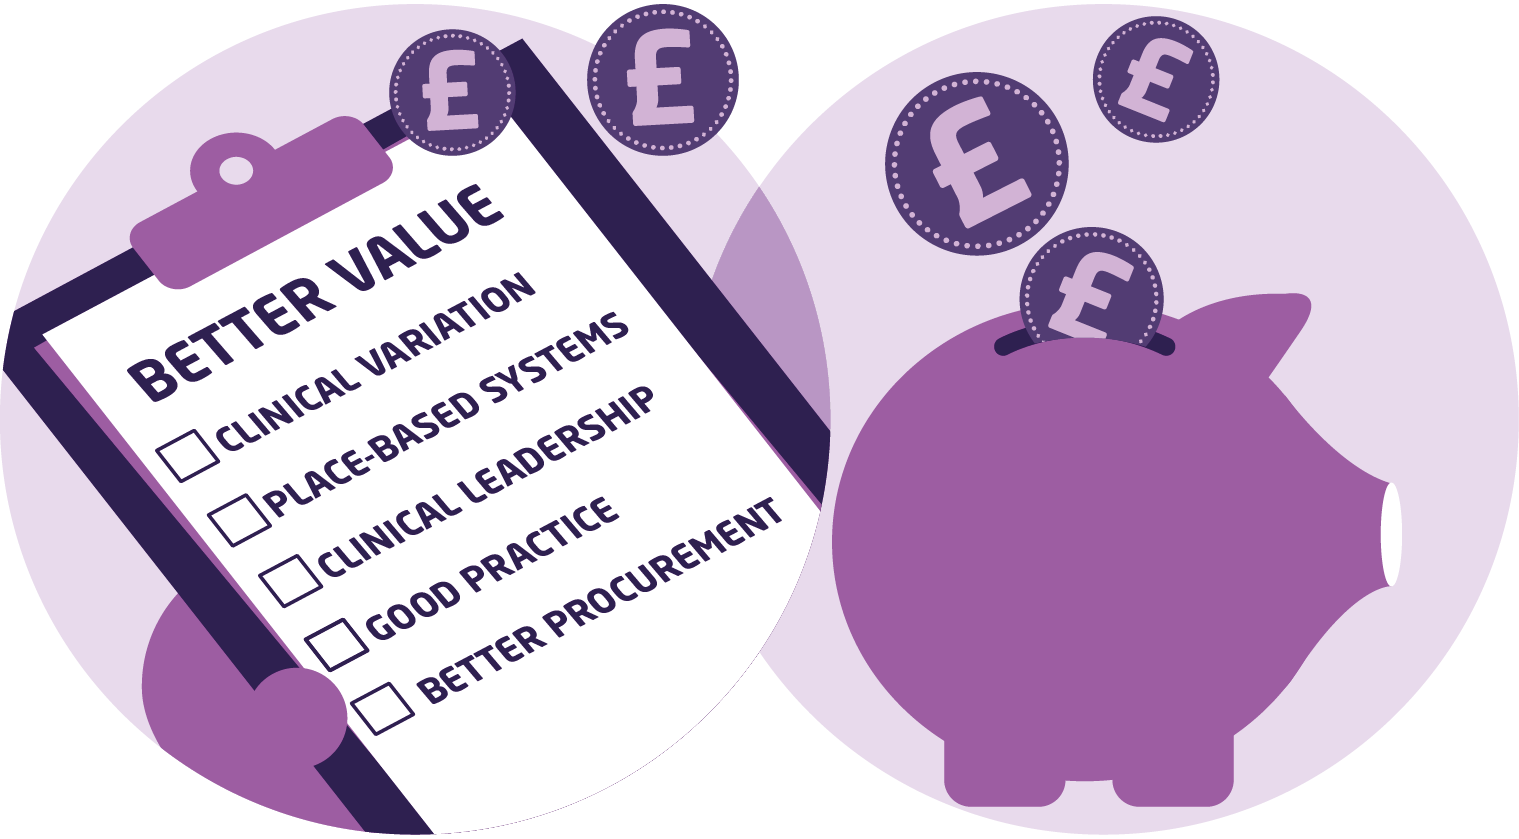 'Better value' checklist with coins from a piggy bank feeding into it